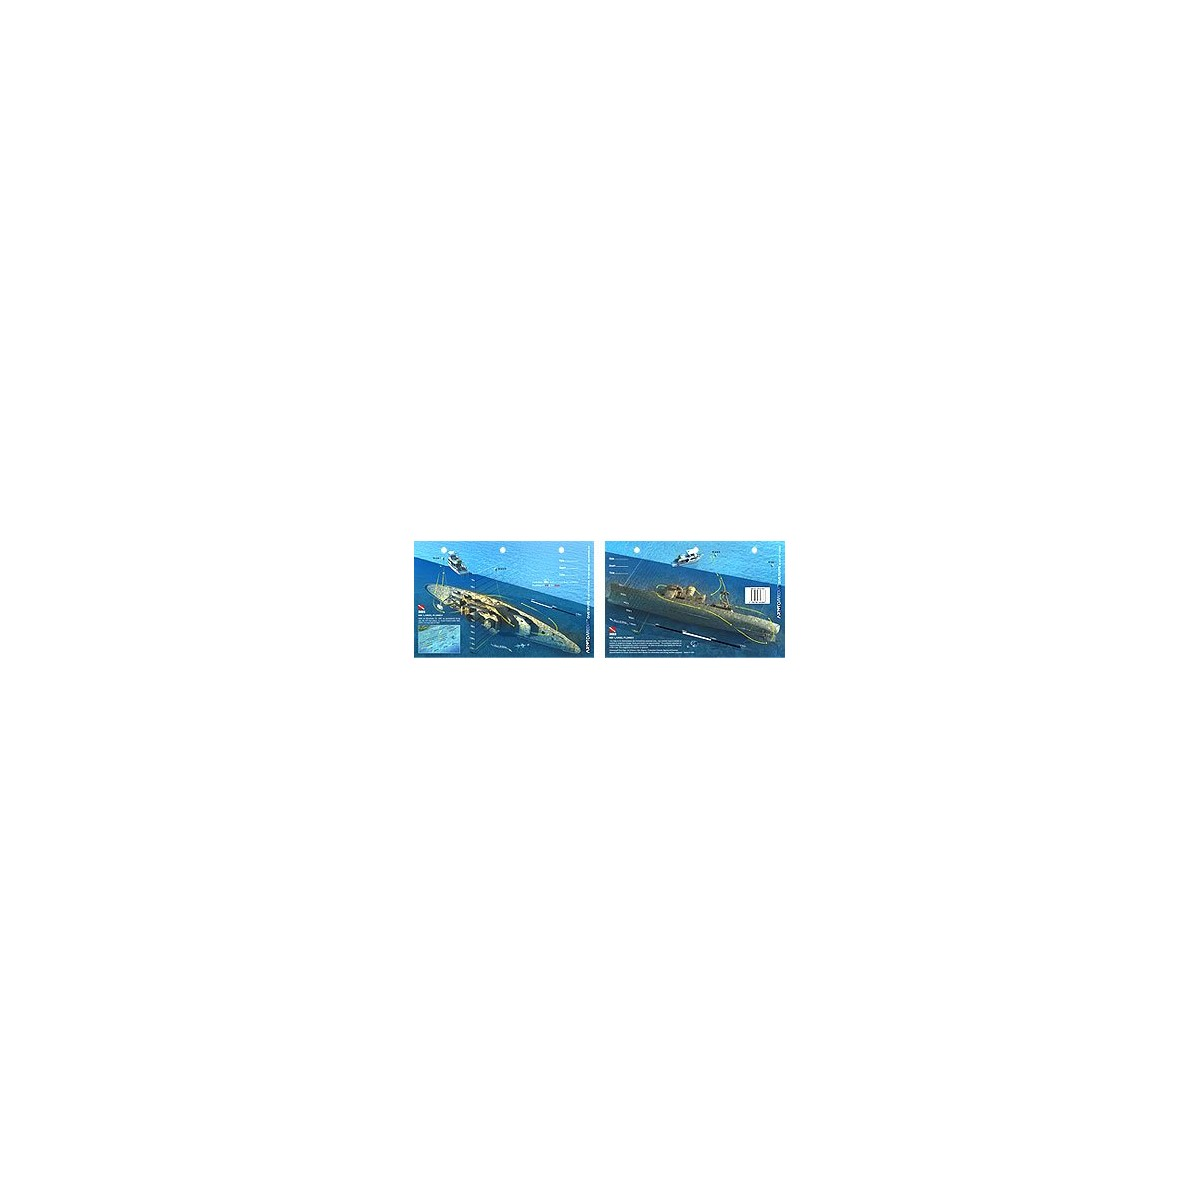 Bibb in Key Largo, Florida (8.5 x 5.5 Inches) (21.6 x 15cm) - New Art to Media Underwater Waterproof 3D Dive Site Map